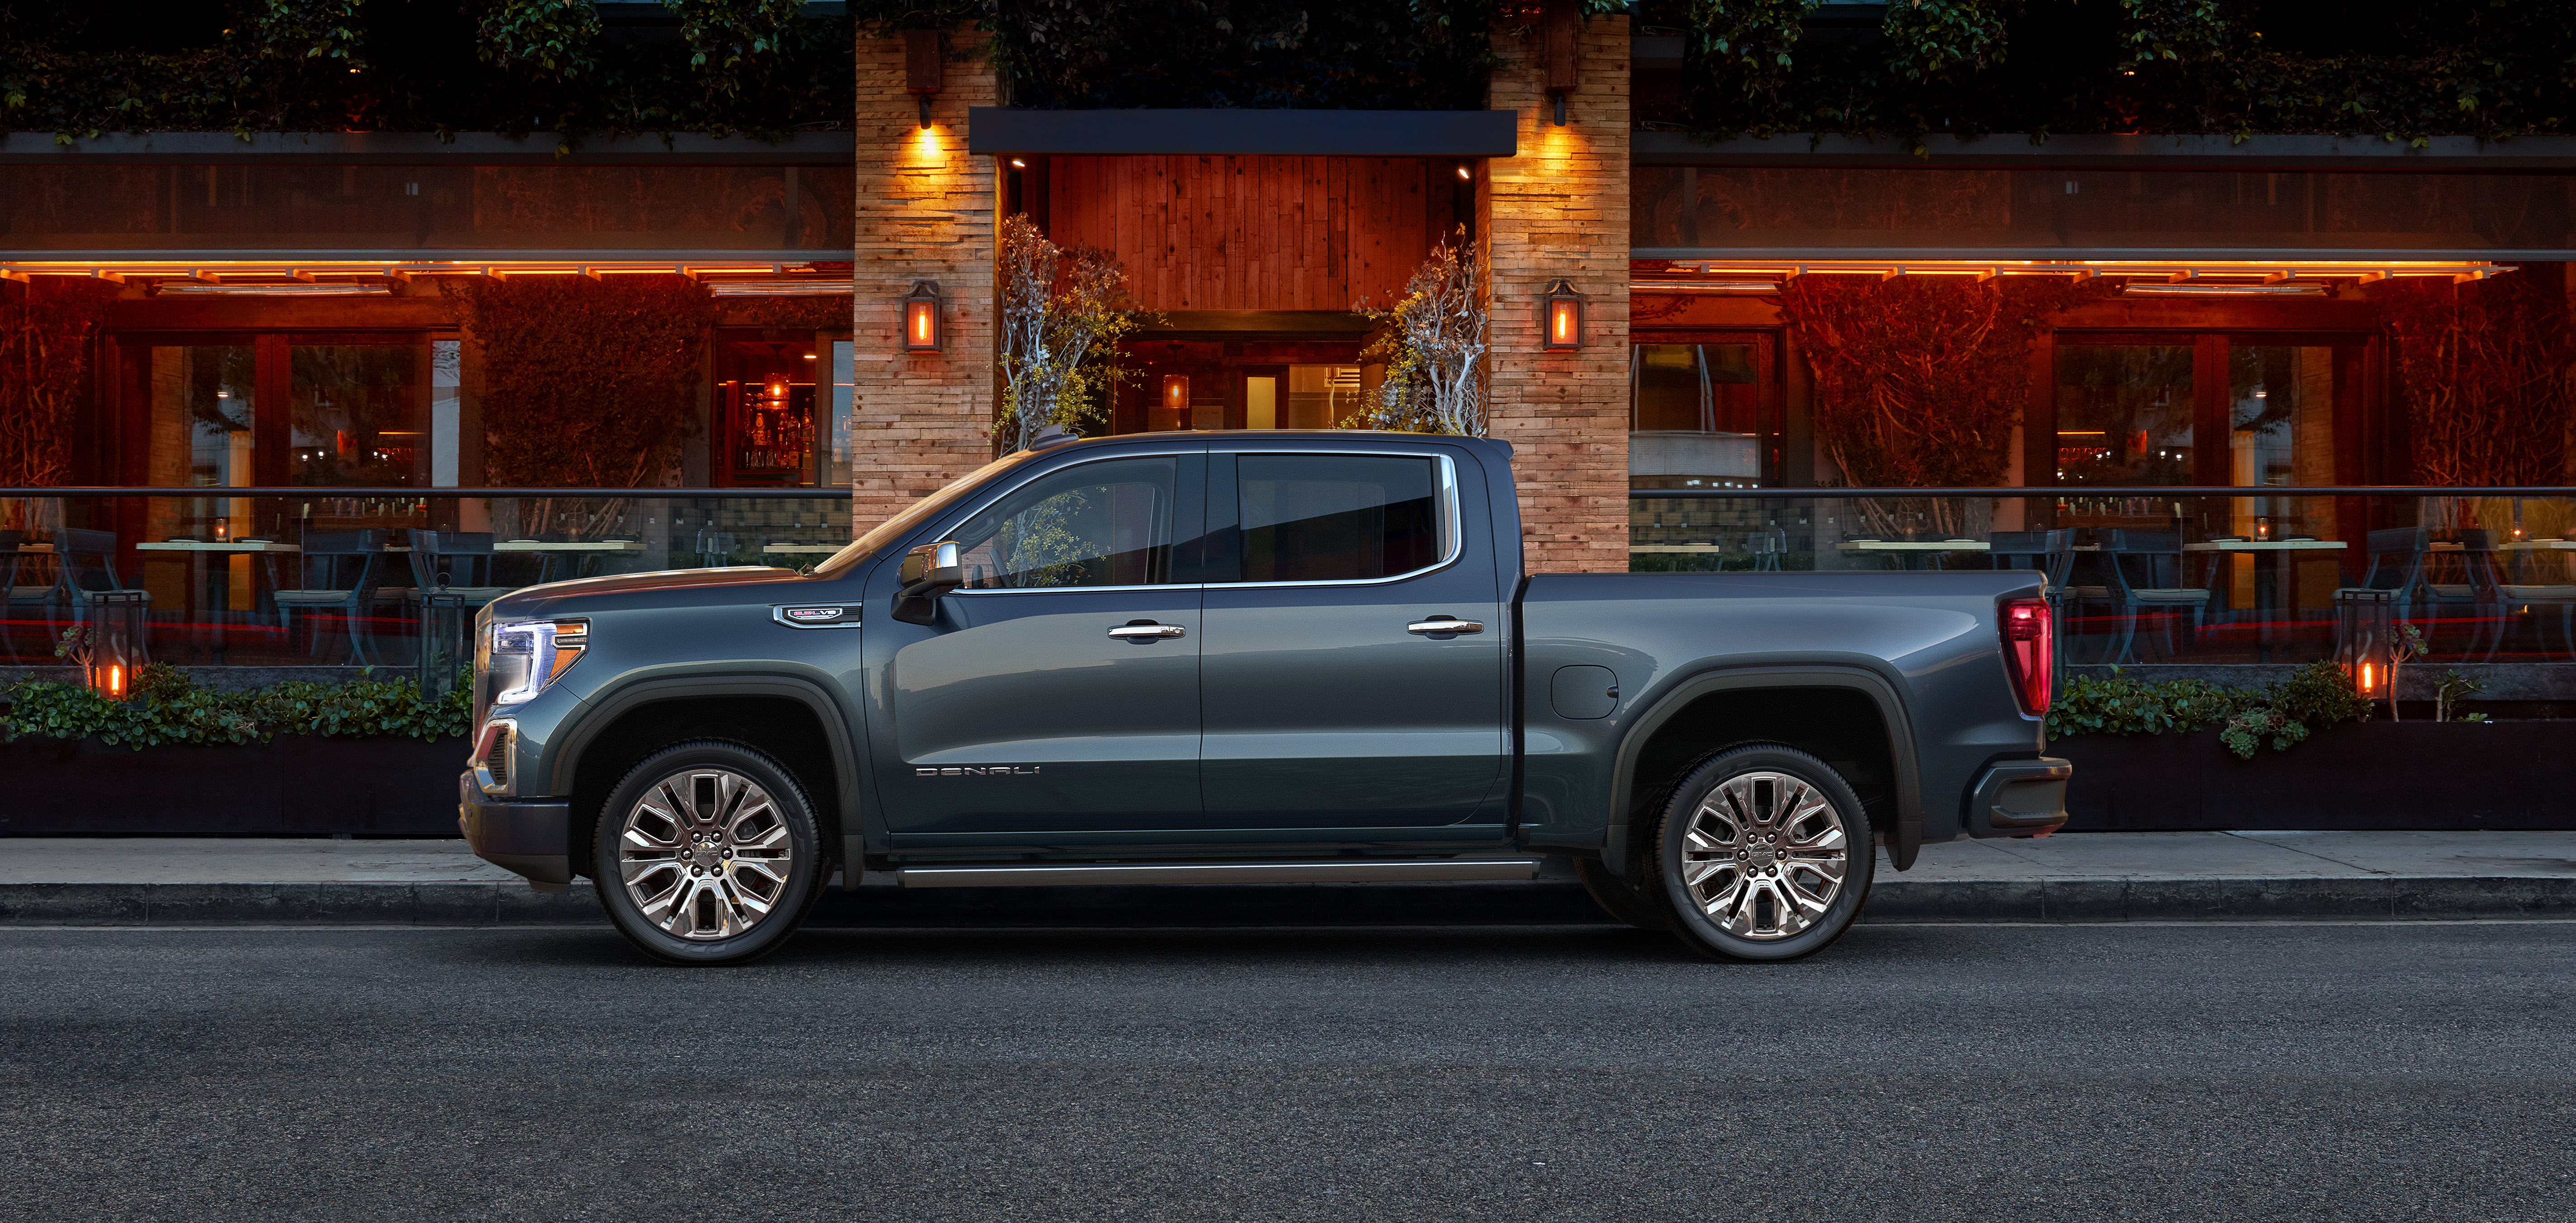 auto chicago chevrolet trail silverado boss gallery show special at specials img acadia gmc chevy lt buick photo thompson lease edition blog